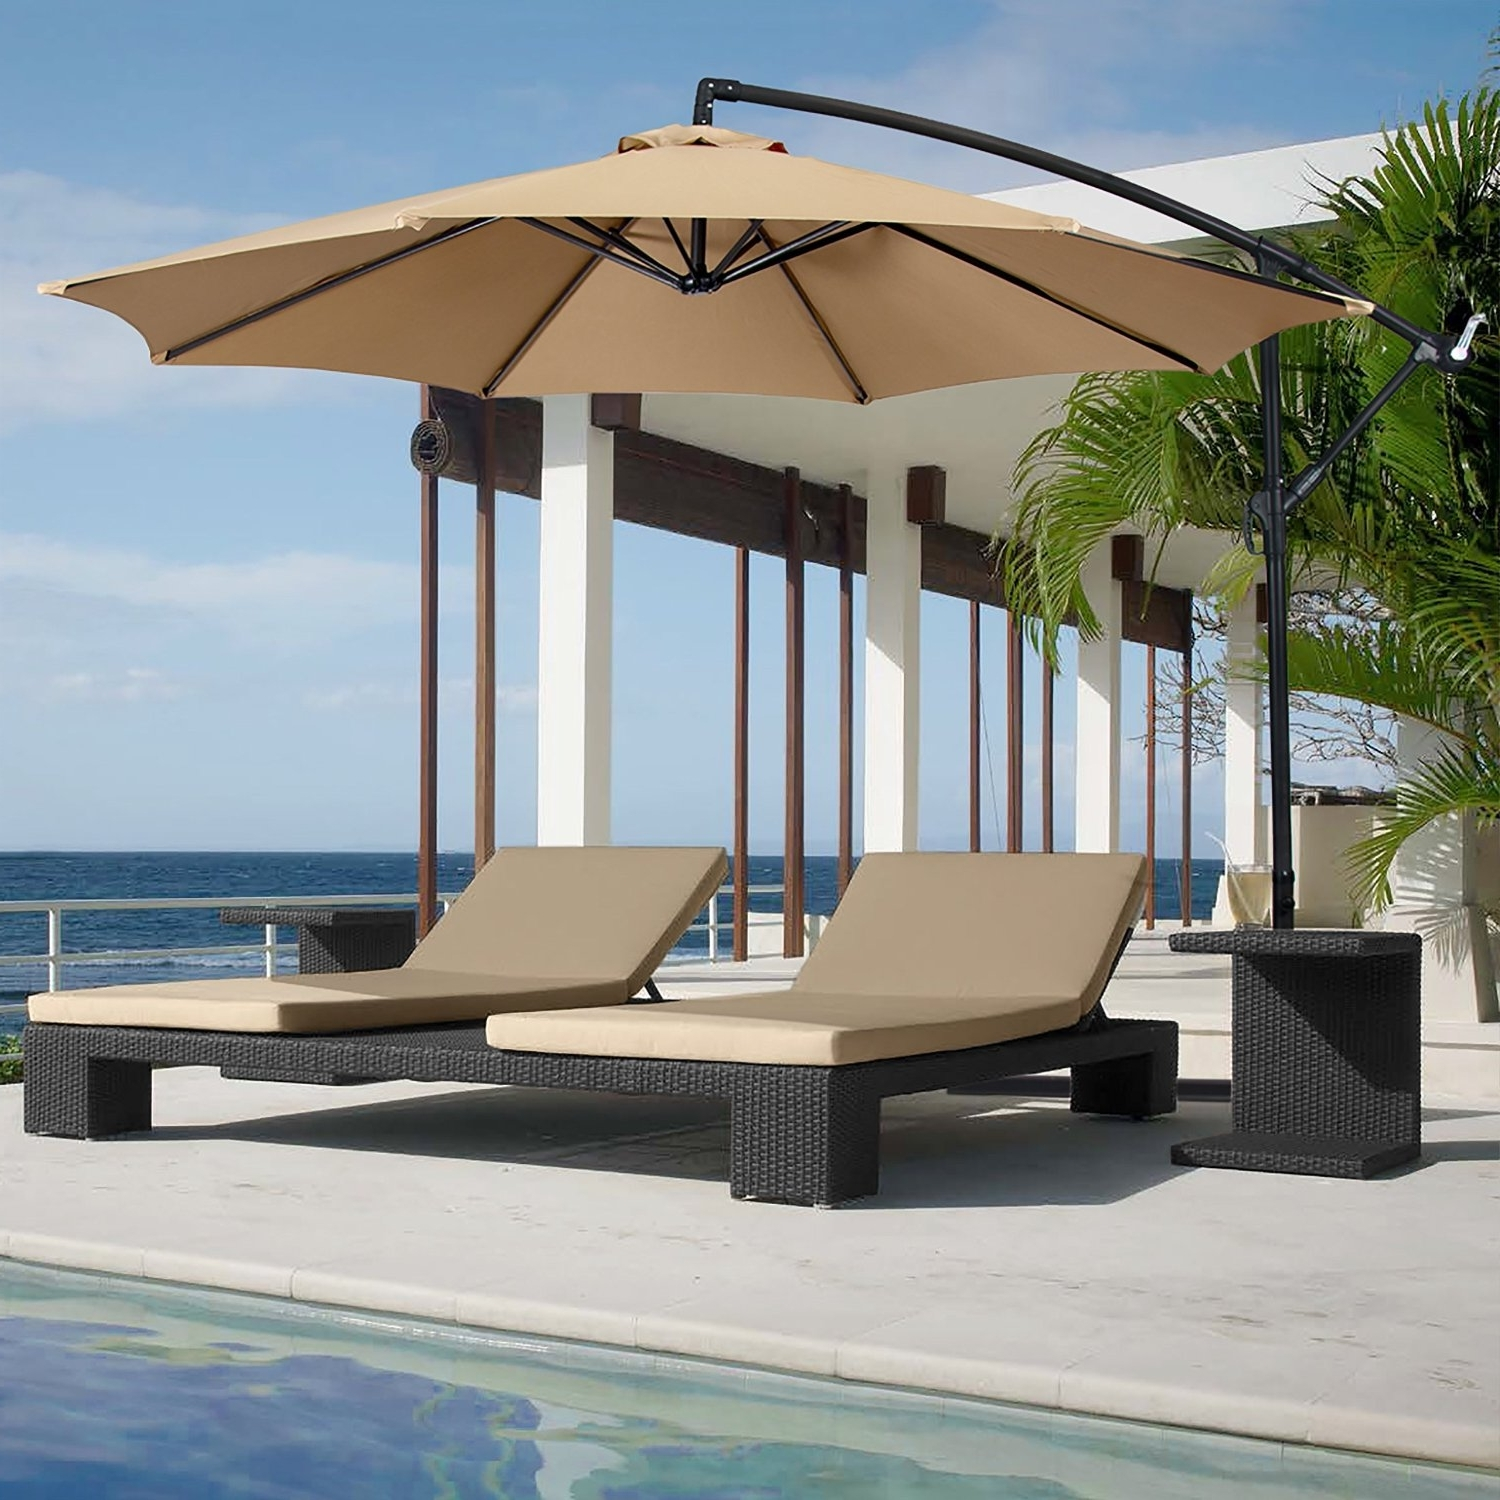 Offset Patio Umbrellas With Base In Well Liked Guide: Weighing Down An Offset Cantilever Umbrella – Outsidemodern (View 12 of 20)